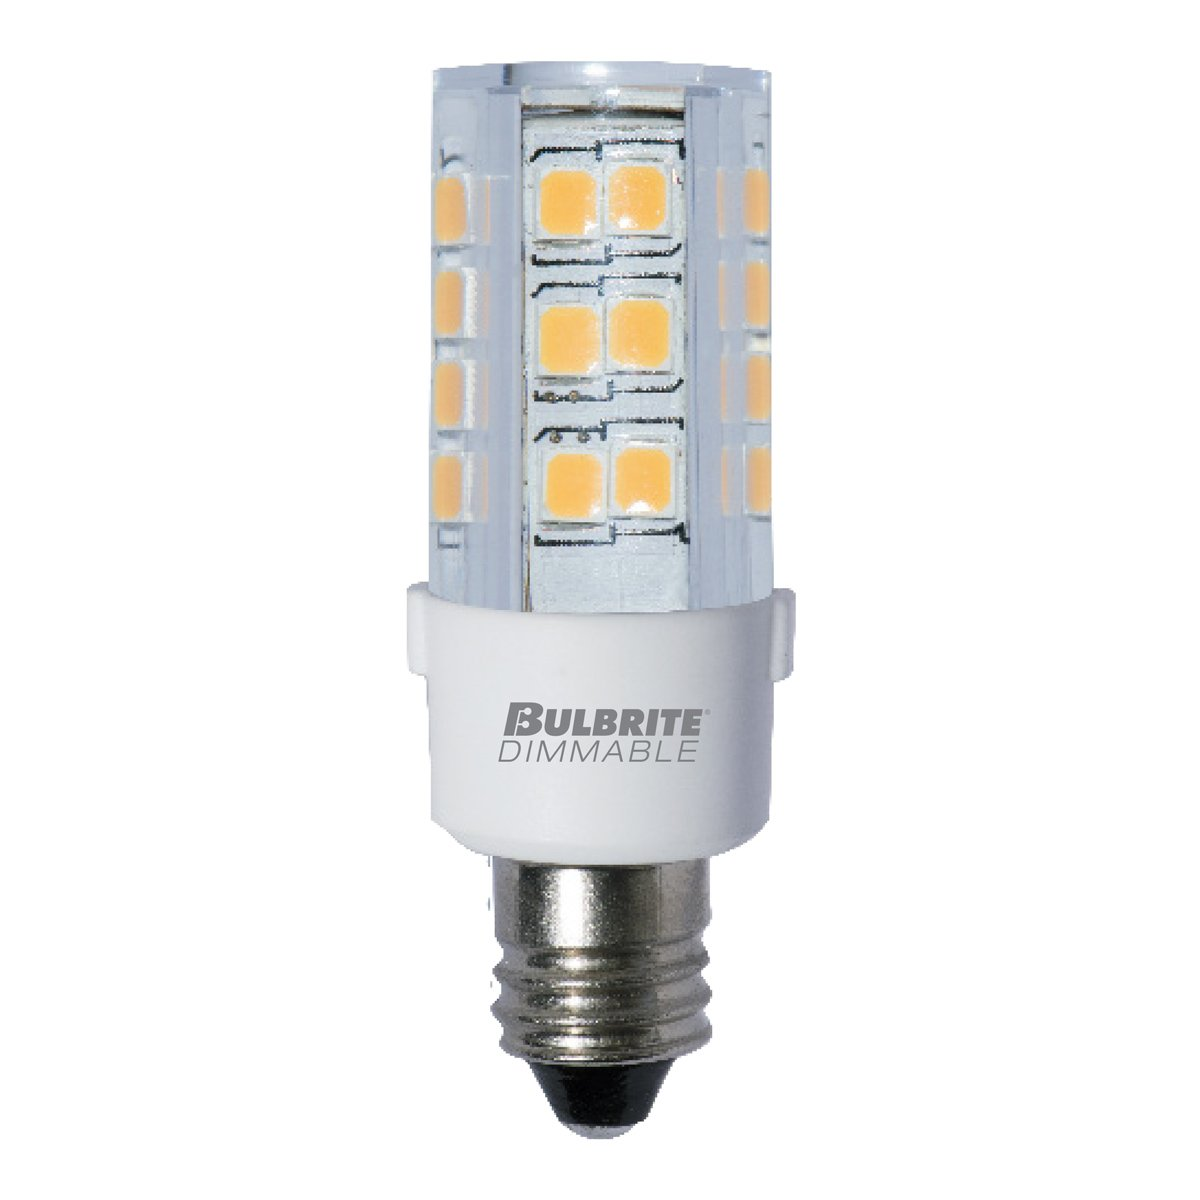 BULBRITE LED T4 MINI-CANDELABRA SCREW (E11) 4.5W DIMMABLE LIGHT BULB 3000K/SOFT WHITE 35 INCANDESCENT EQUIVALENT (Pack of 2)